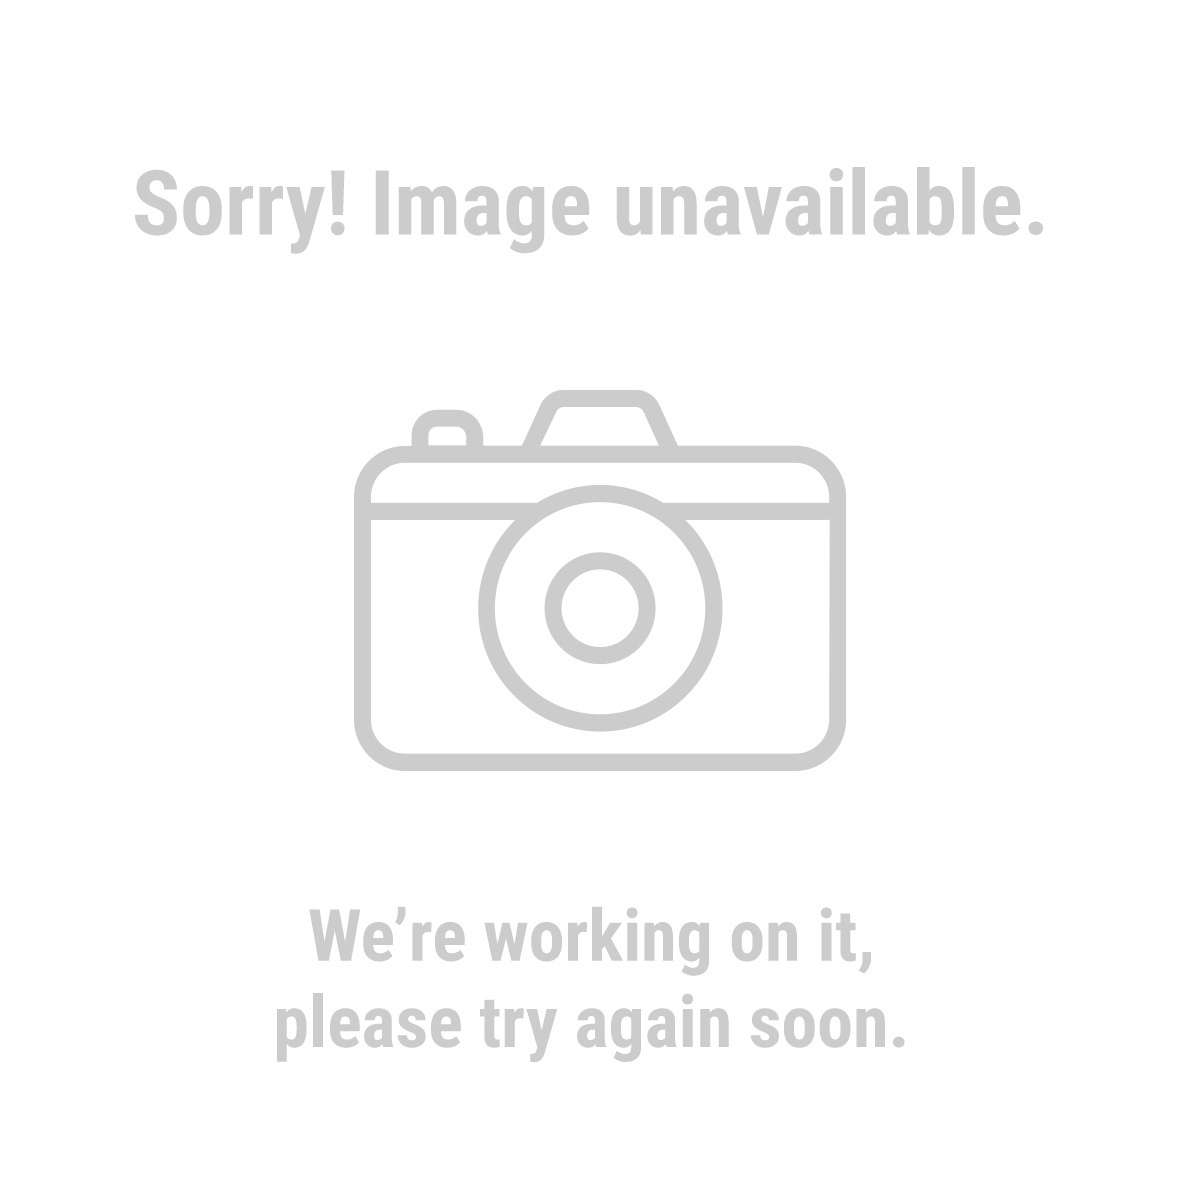 Garden Hose Water Pump, Garden, Free Engine Image For User